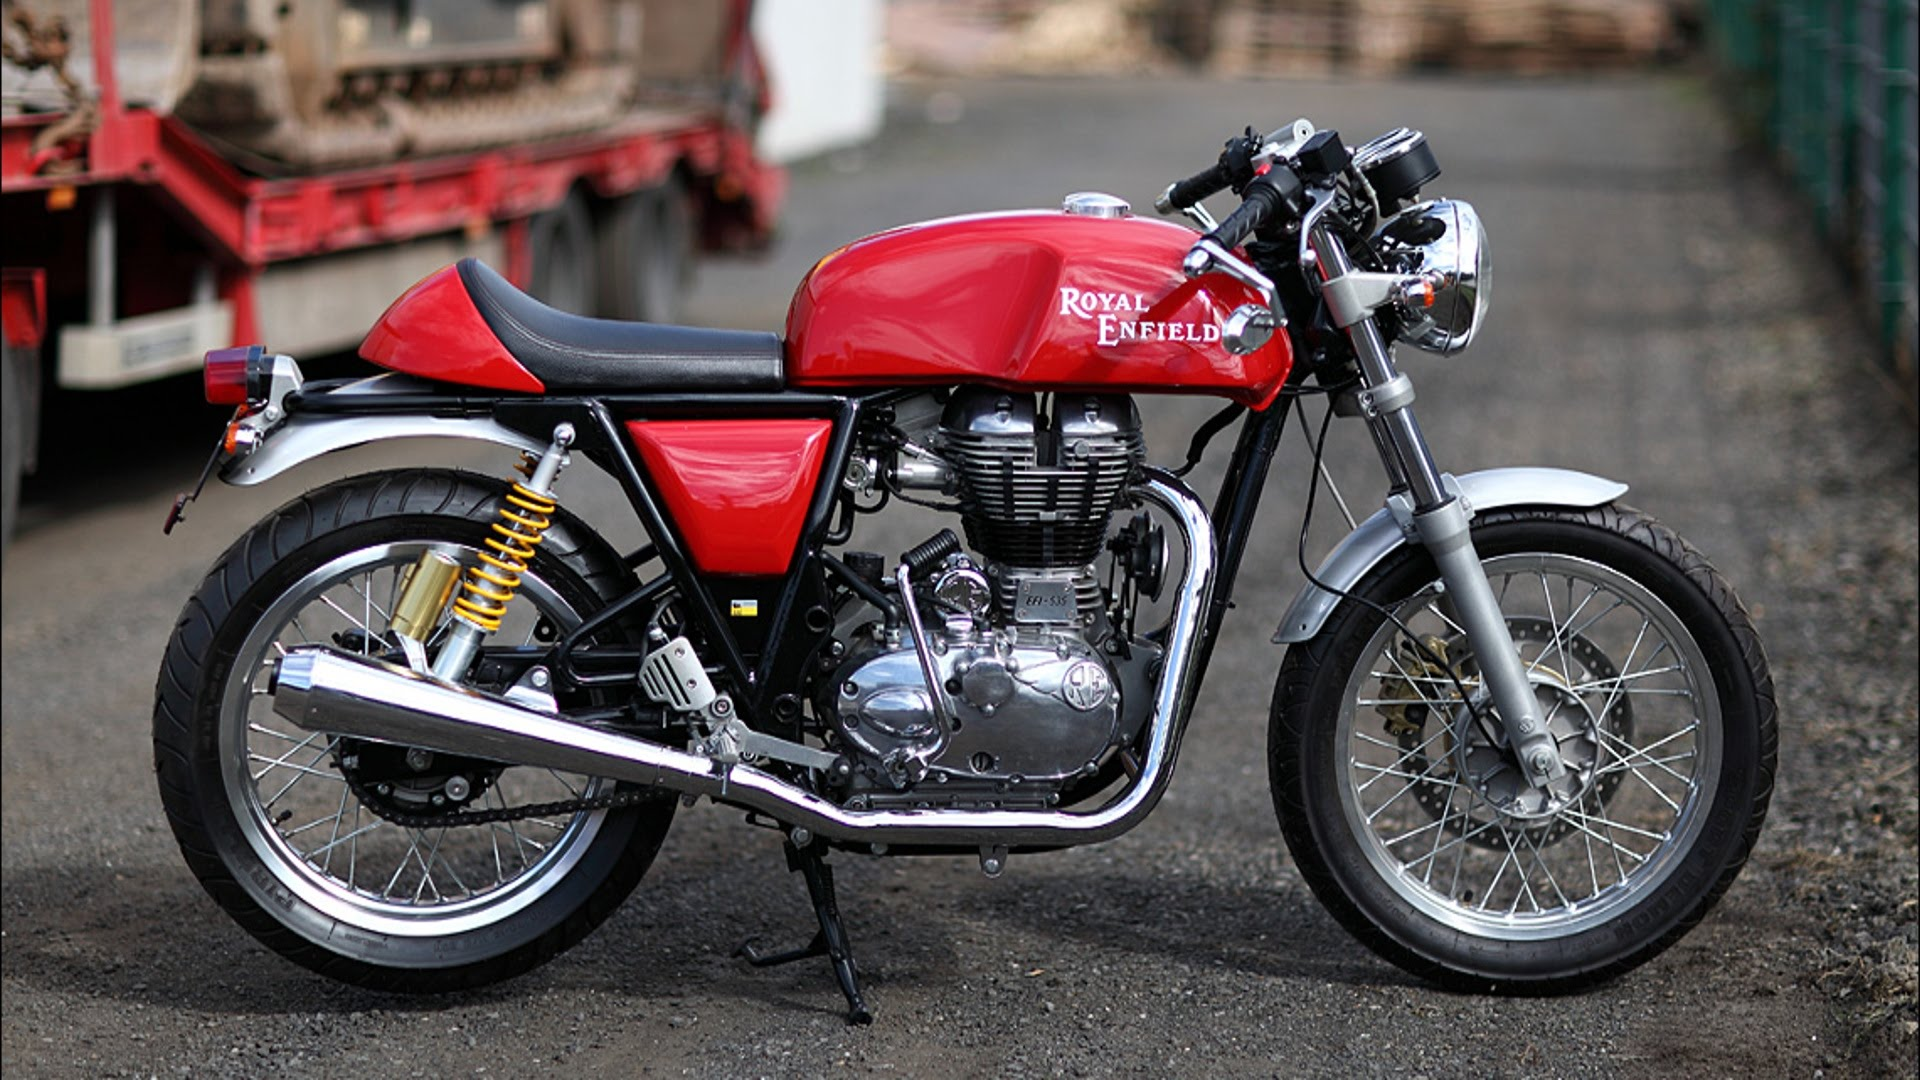 Royal Enfield to display new twin-cylinder bike in EICMA Milan